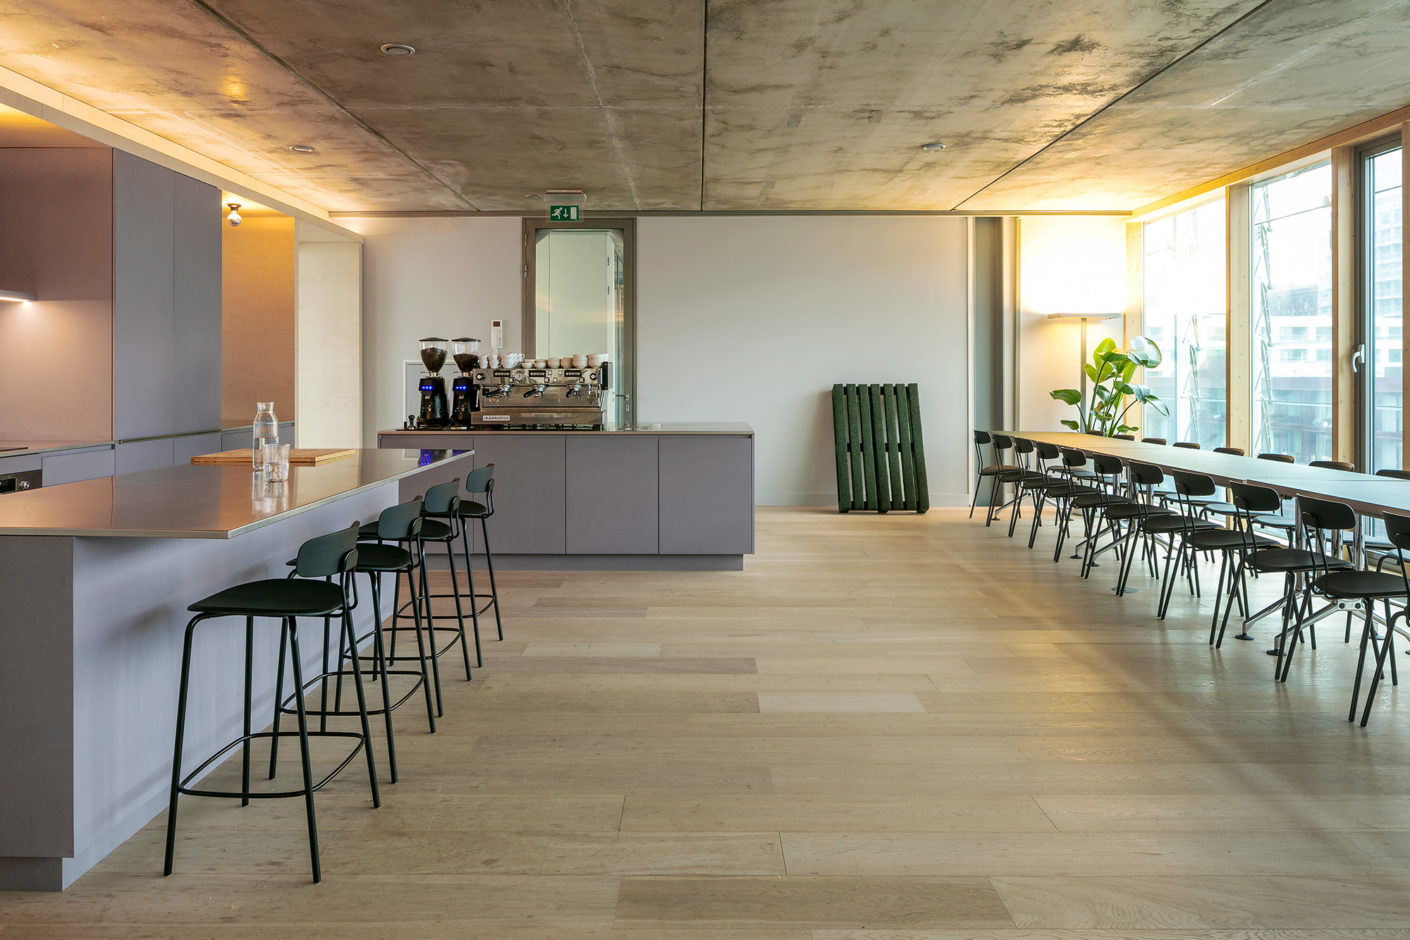 Enbiun creative agency in Amsterdam with furniture by Zeitraum